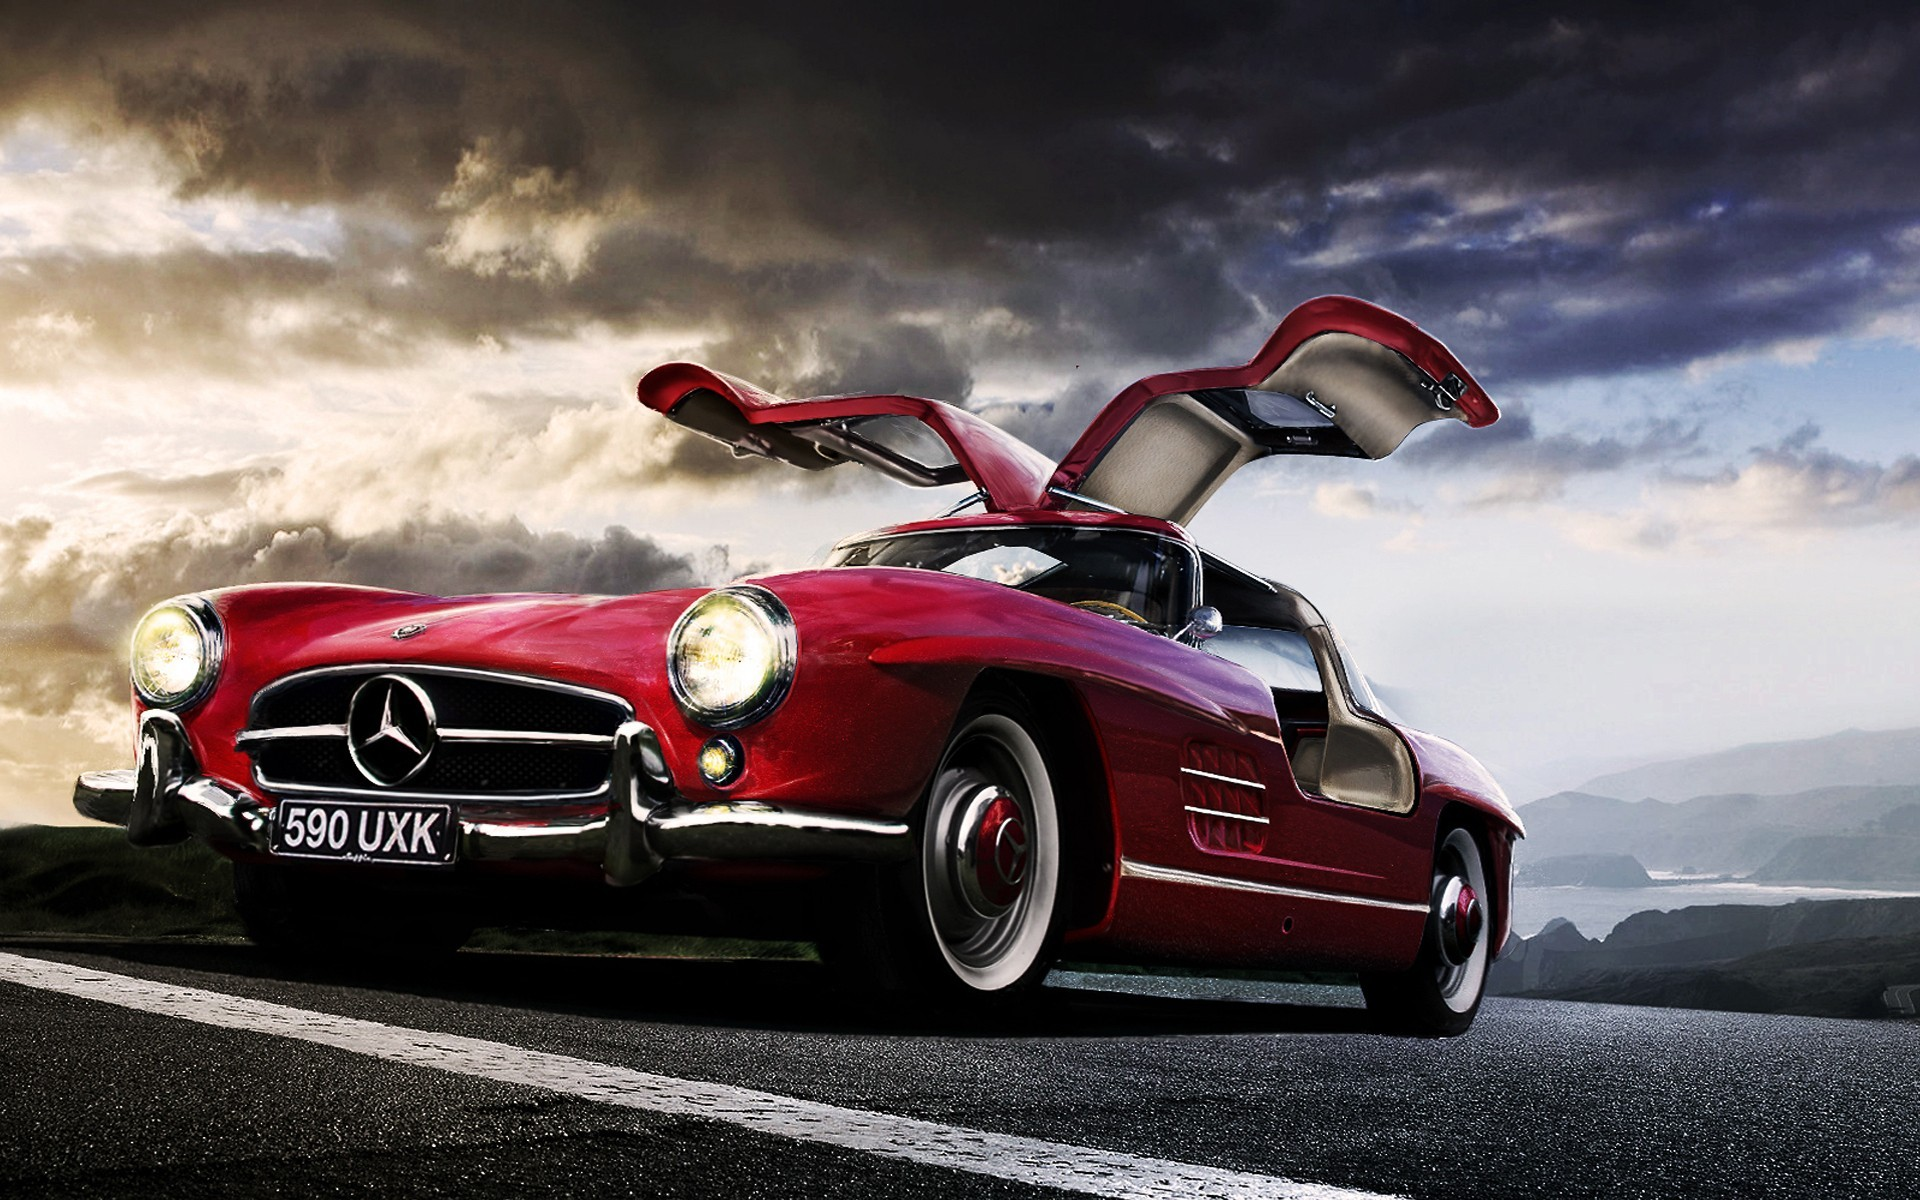 cars tires mercedes-benz wallpaper | allwallpaper.in #8423 | pc | en